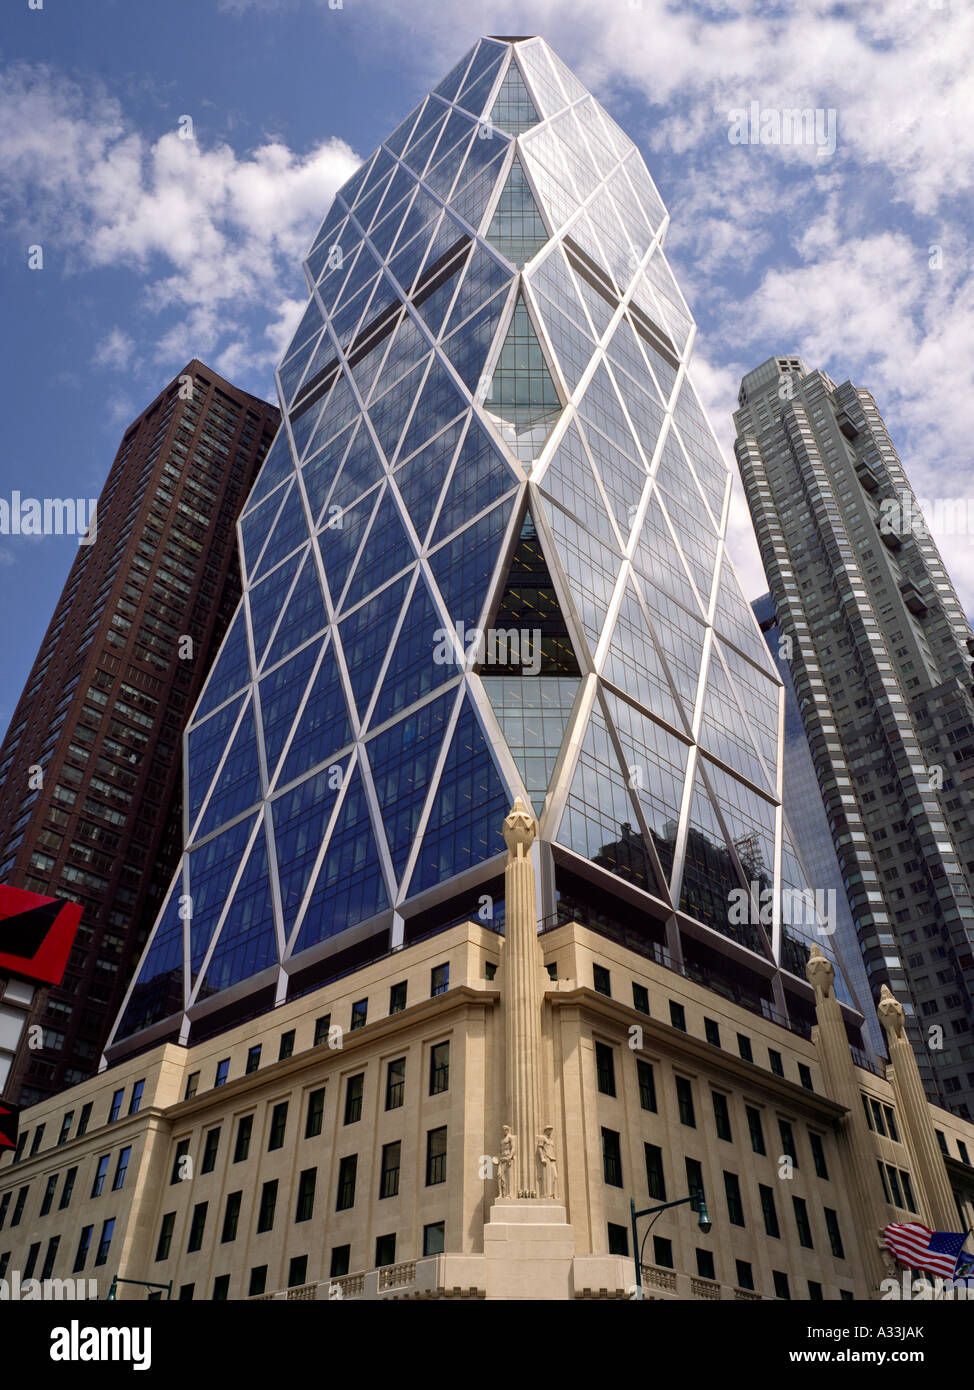 Hearst Tower, 300 West 57th Street, New York. 2006 Architetto: Foster e Partner Immagini Stock